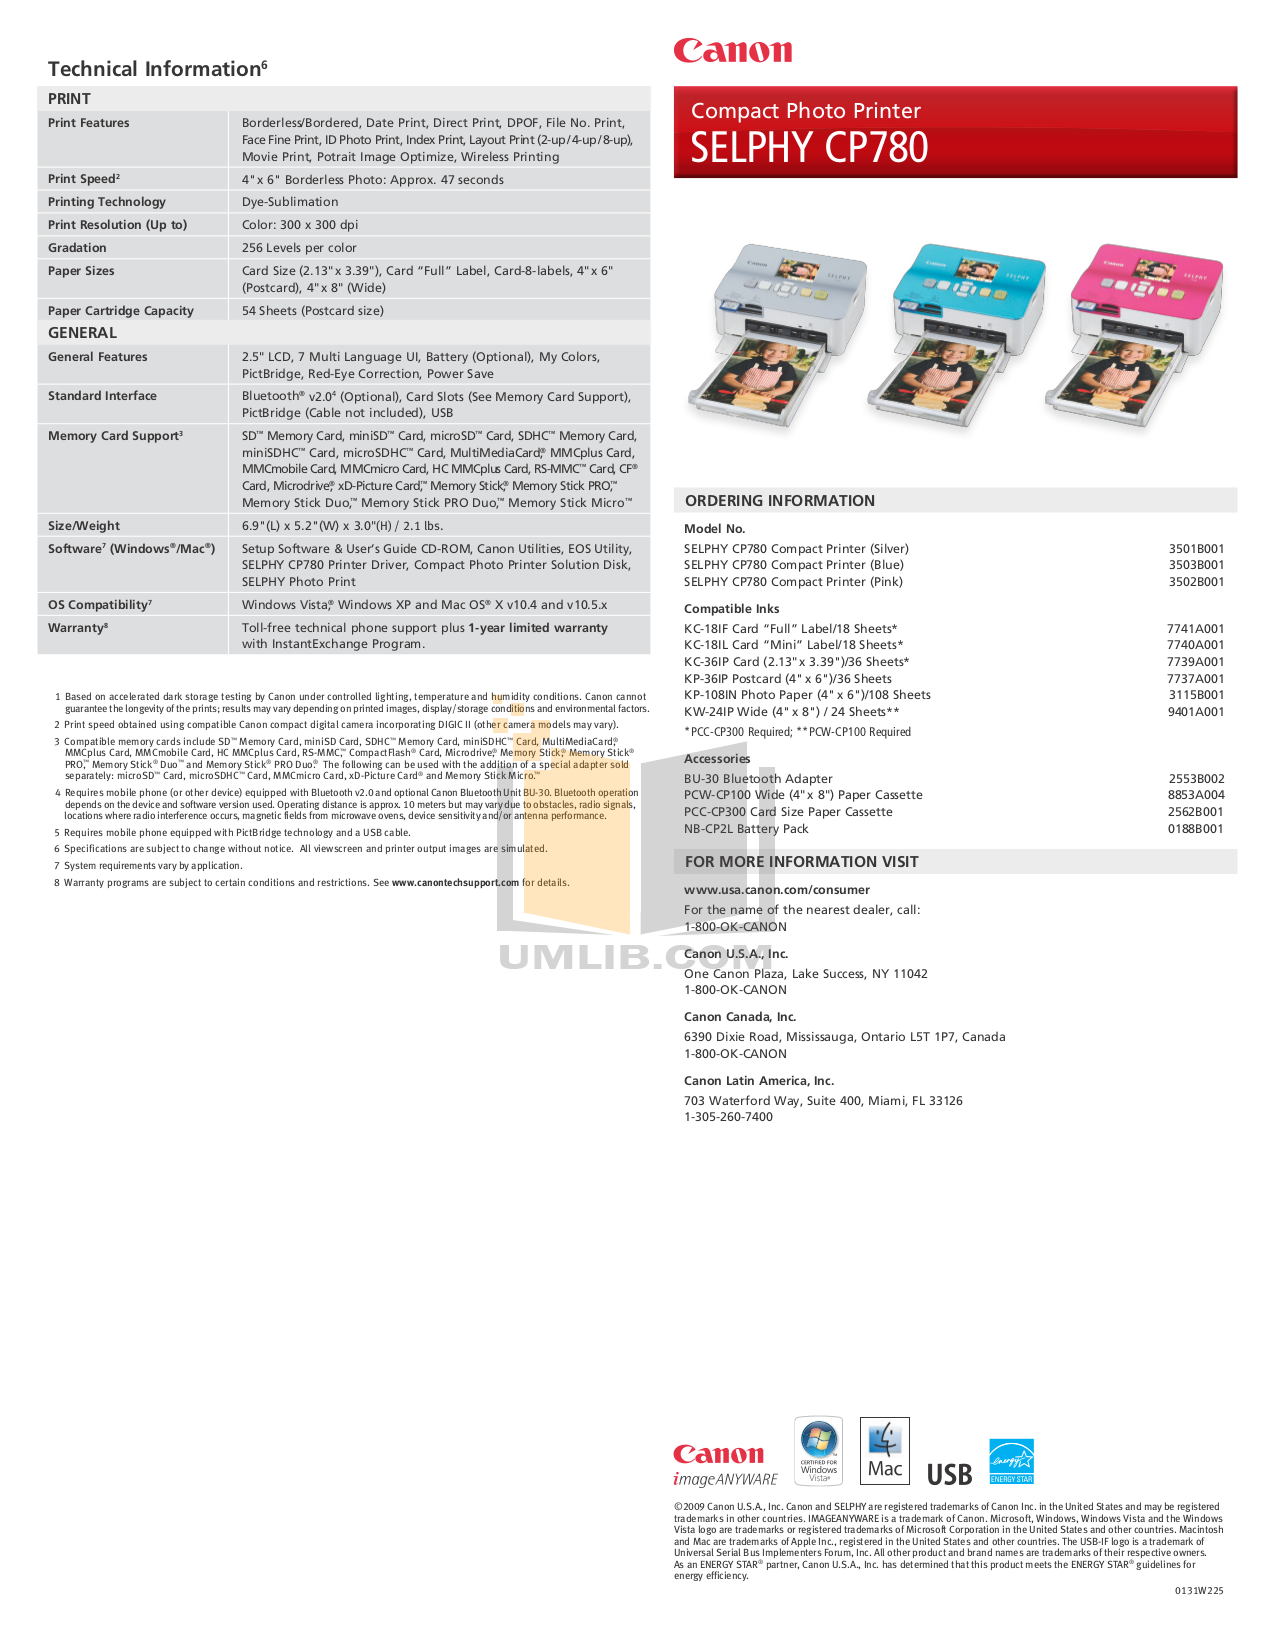 PDF manual for Canon Printer SELPHY CP780